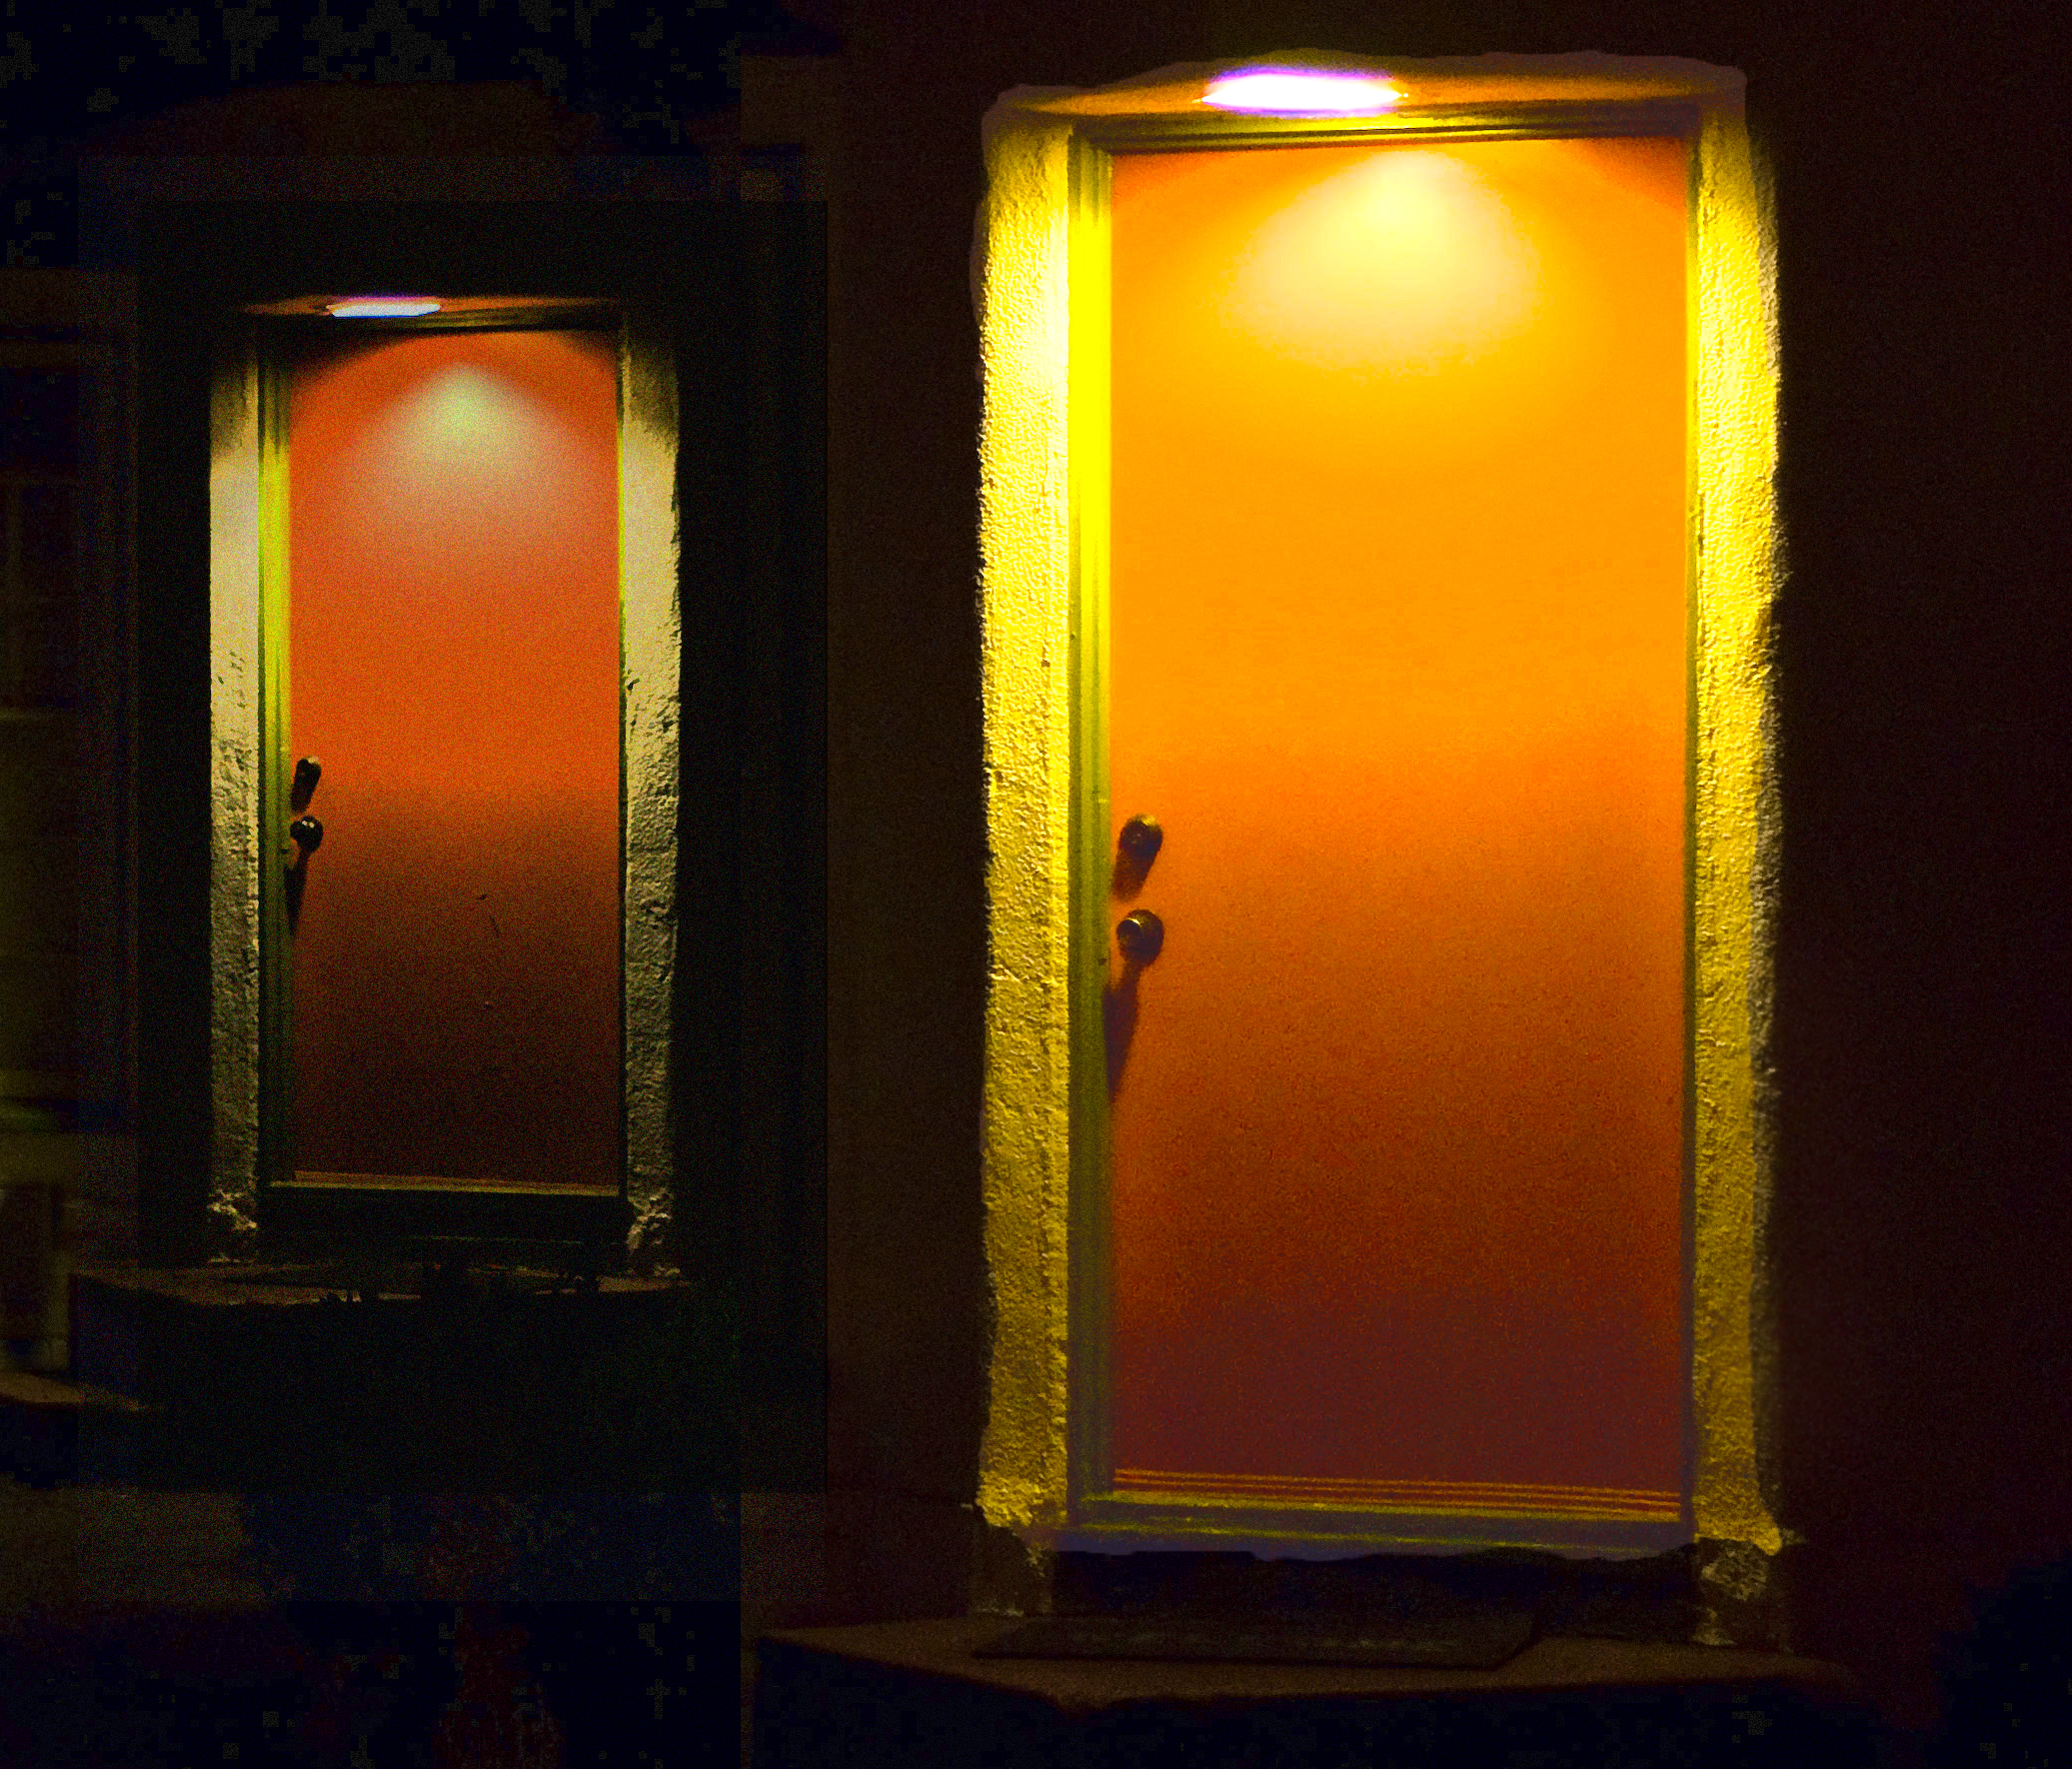 which door would you choose? Creepy or Rude?